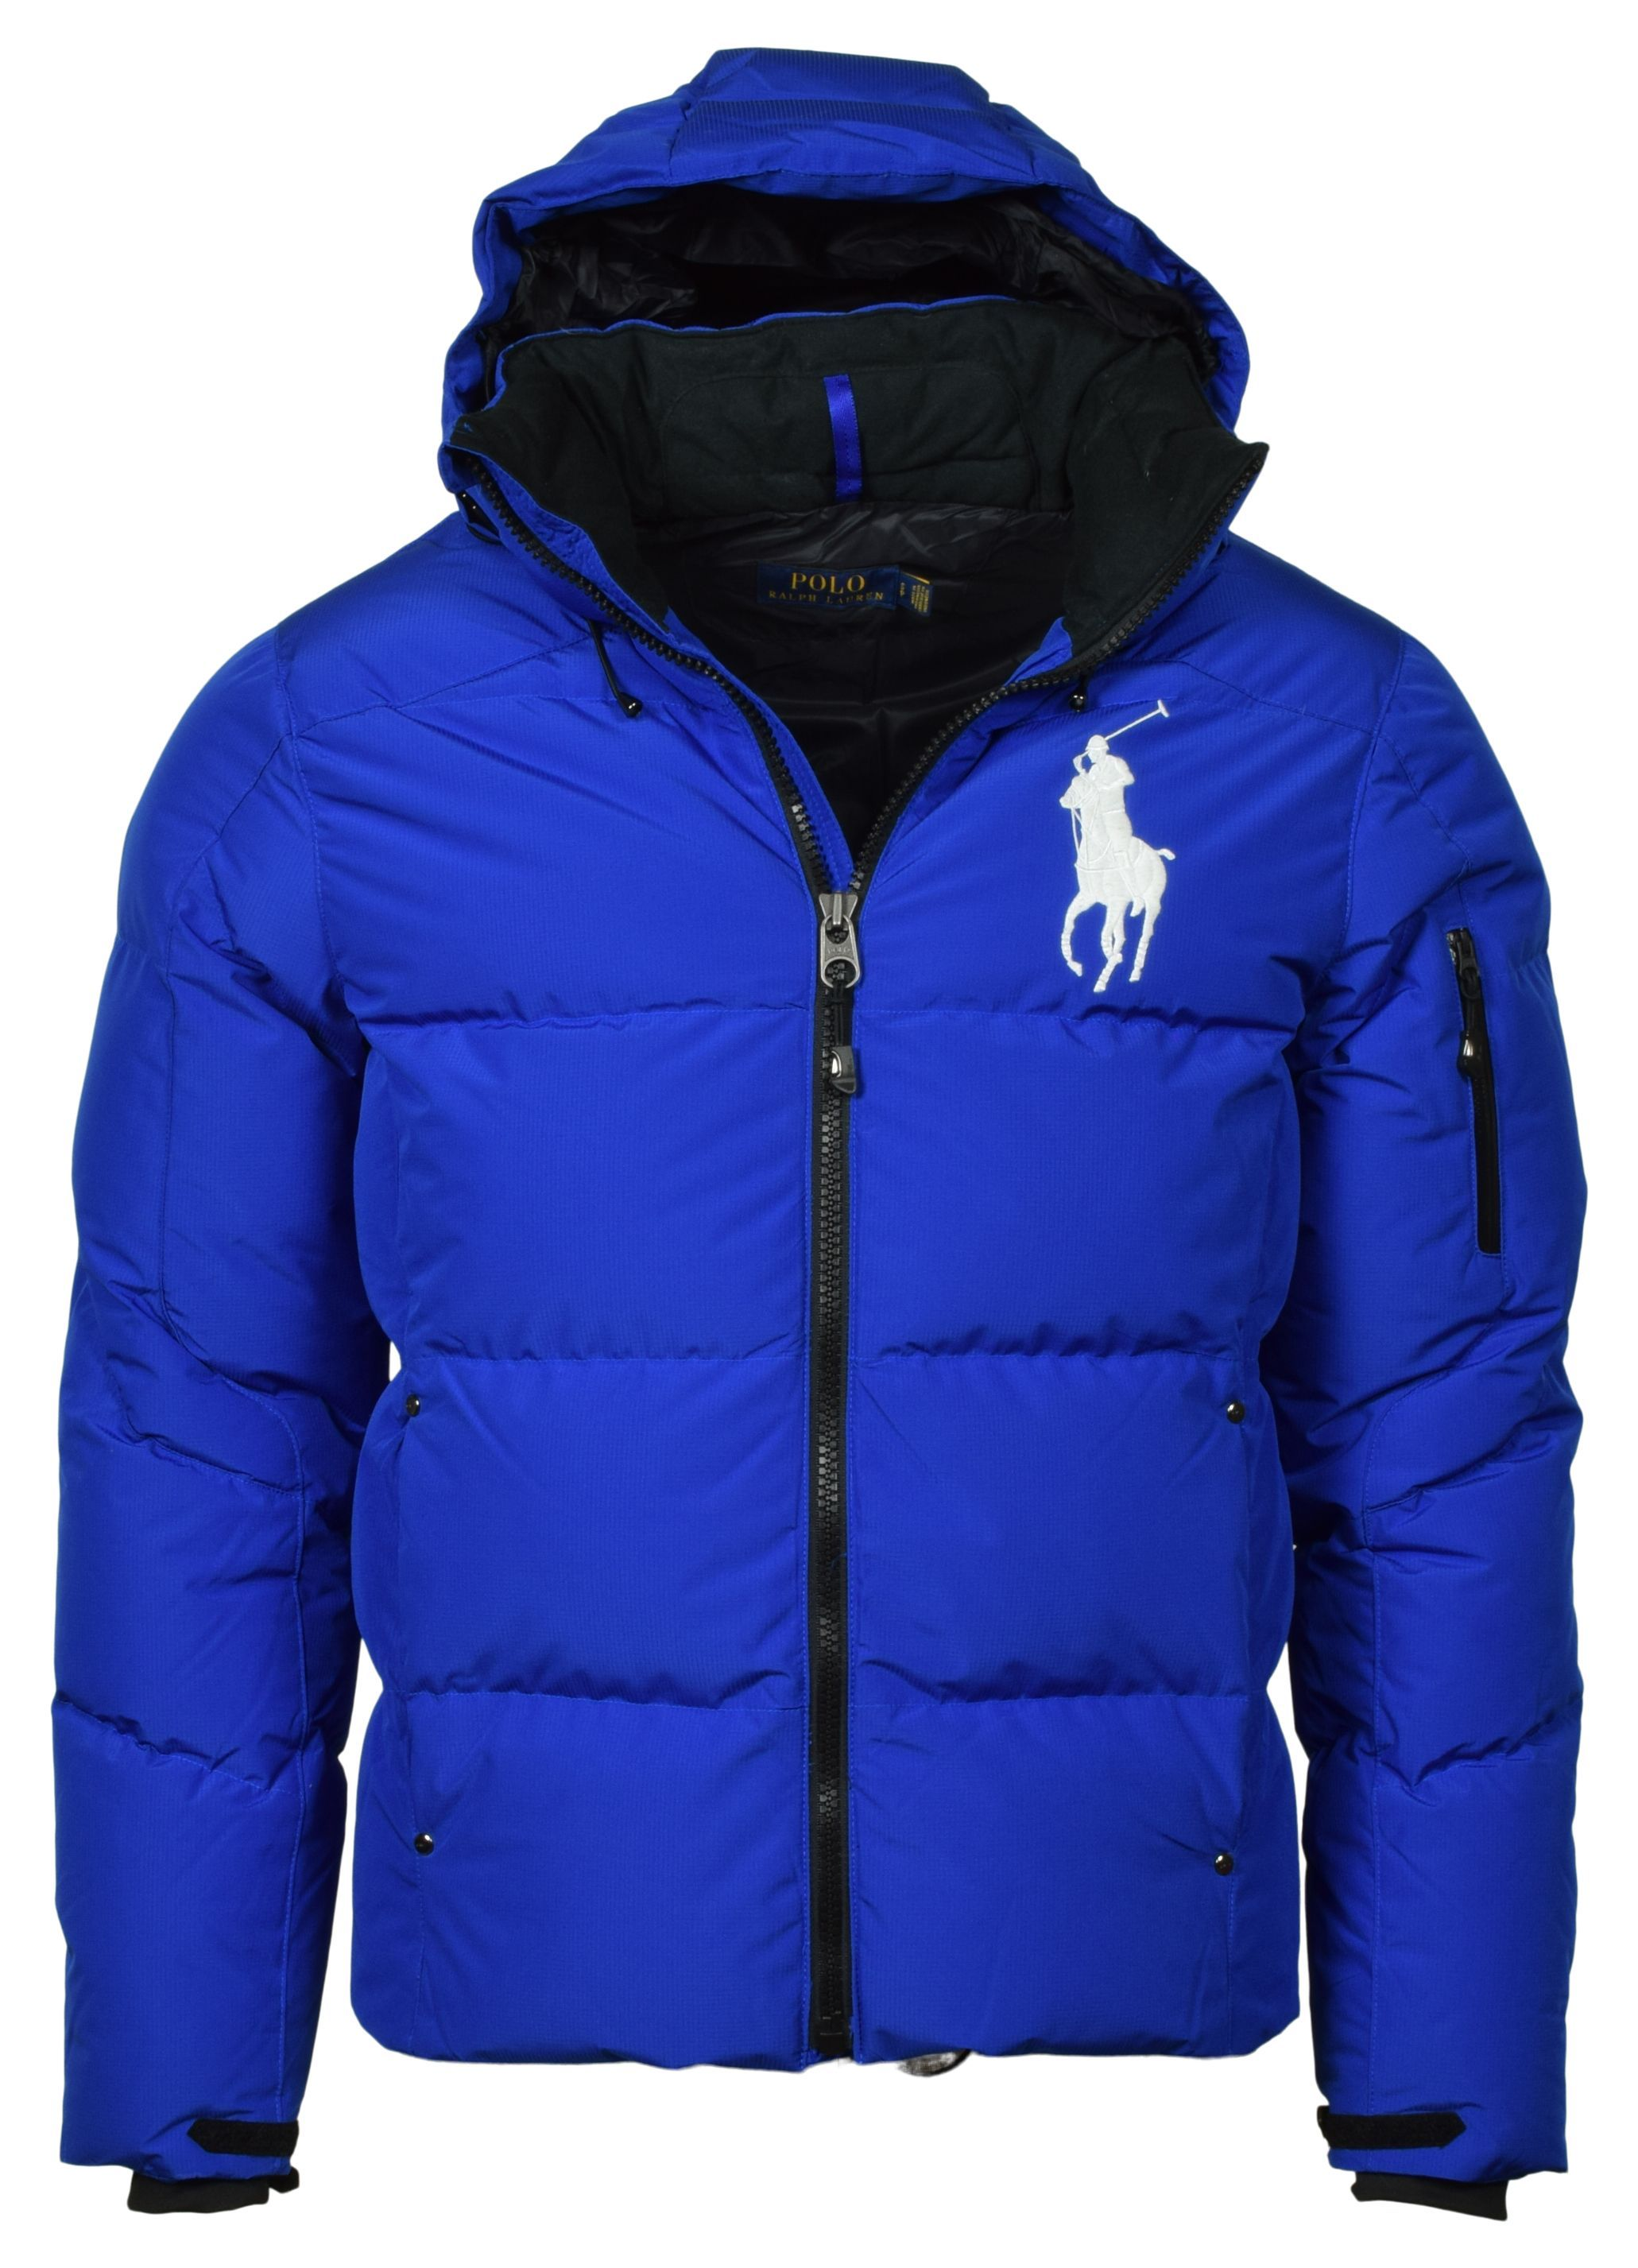 Pin By Crafts Save Prices On Browse Recent Trends Polo Country Ralph Lauren Quilted Jacket Polo Ralph Lauren Mens Winter Jackets [ 2853 x 2061 Pixel ]